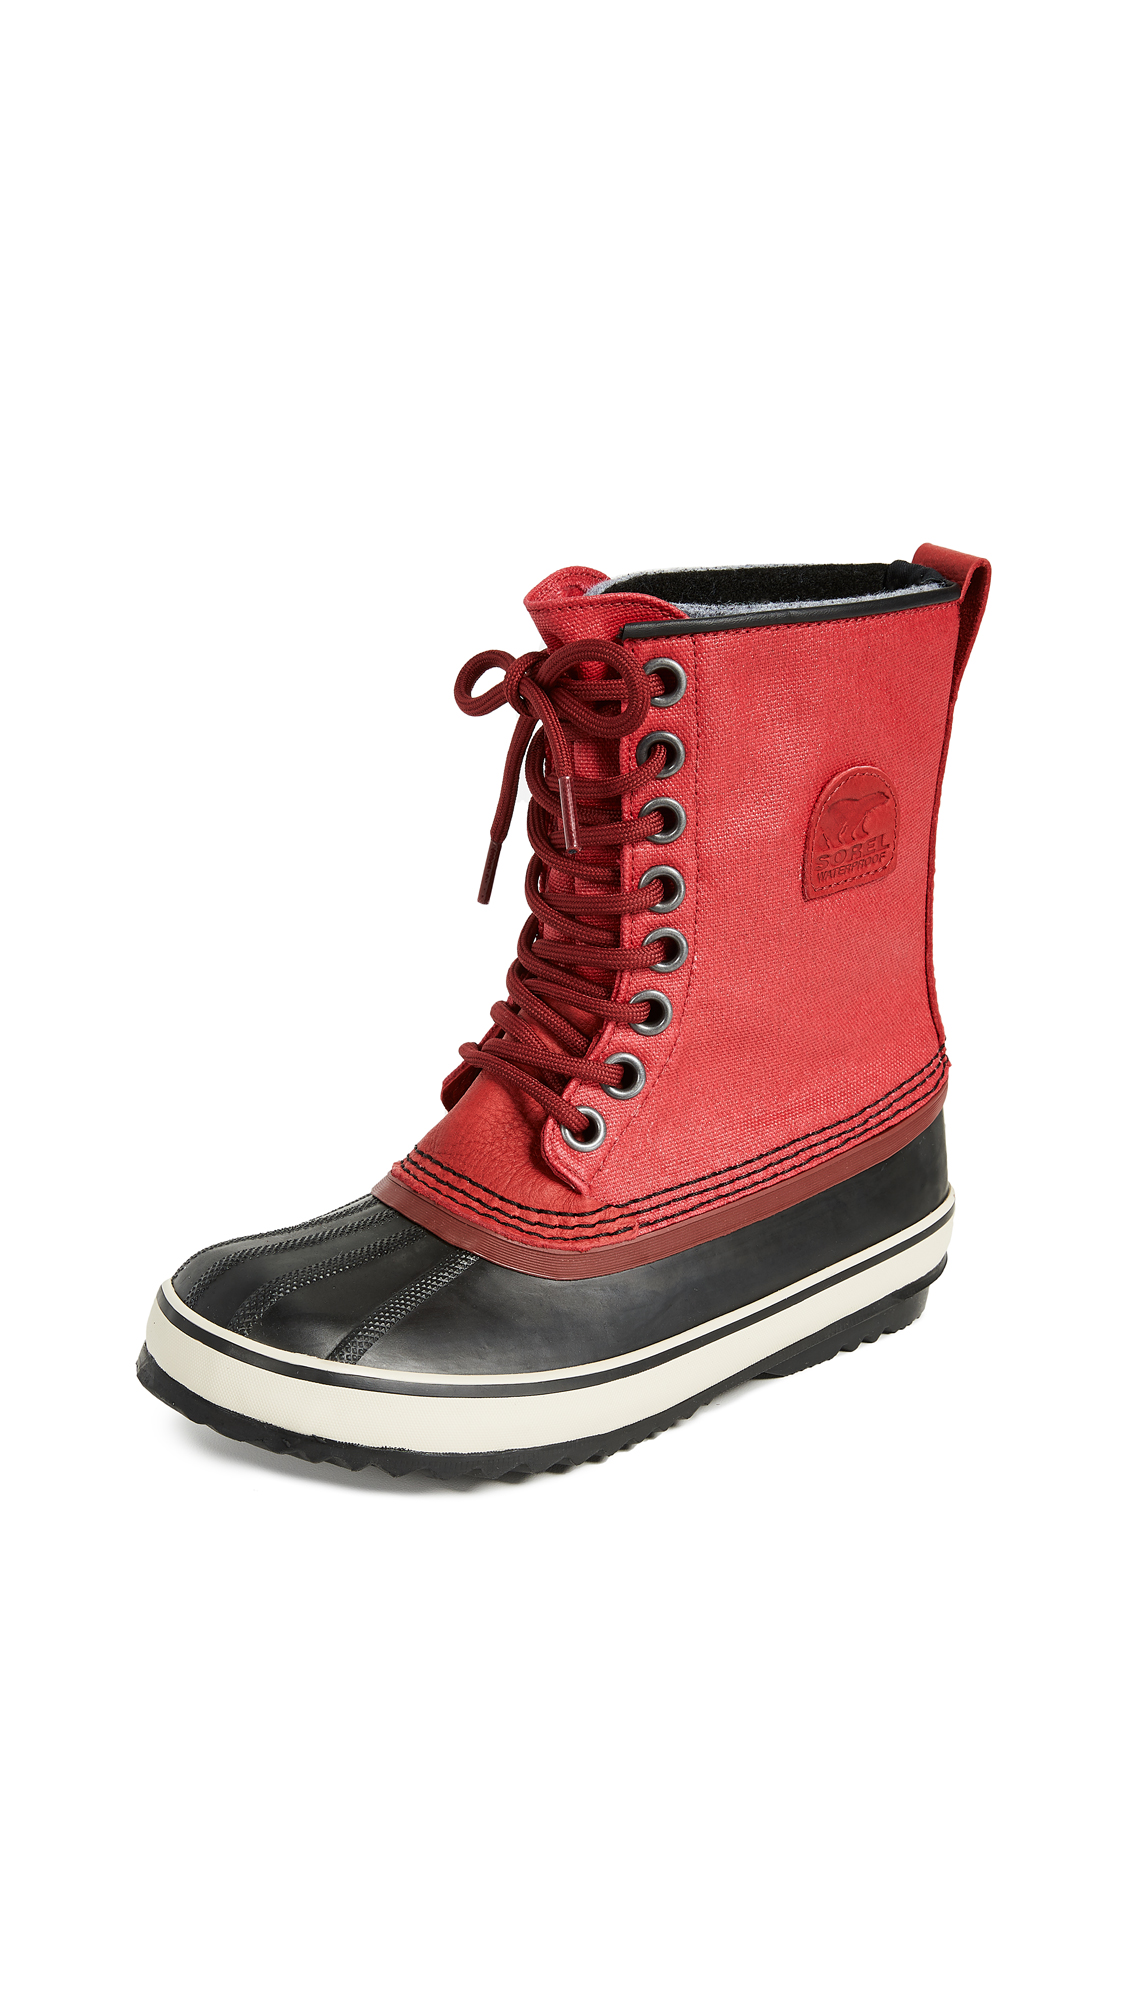 Sorel 1964 Premium CVS Boots - Candy Apple